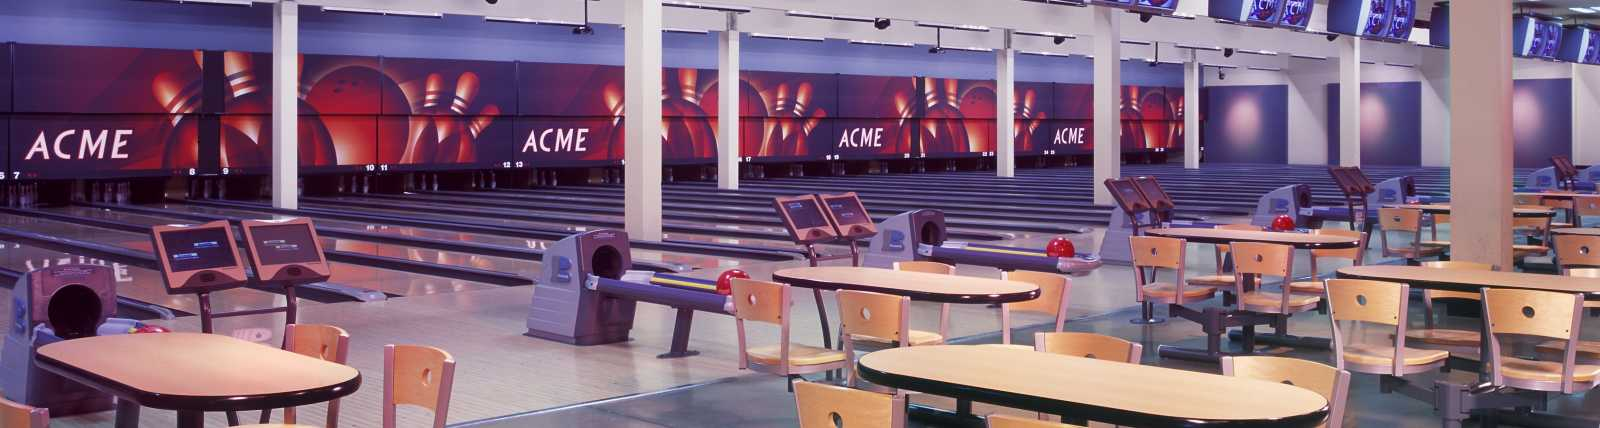 The_Break_Room___ACME_Bowling__Billiards____Events-5.JPG